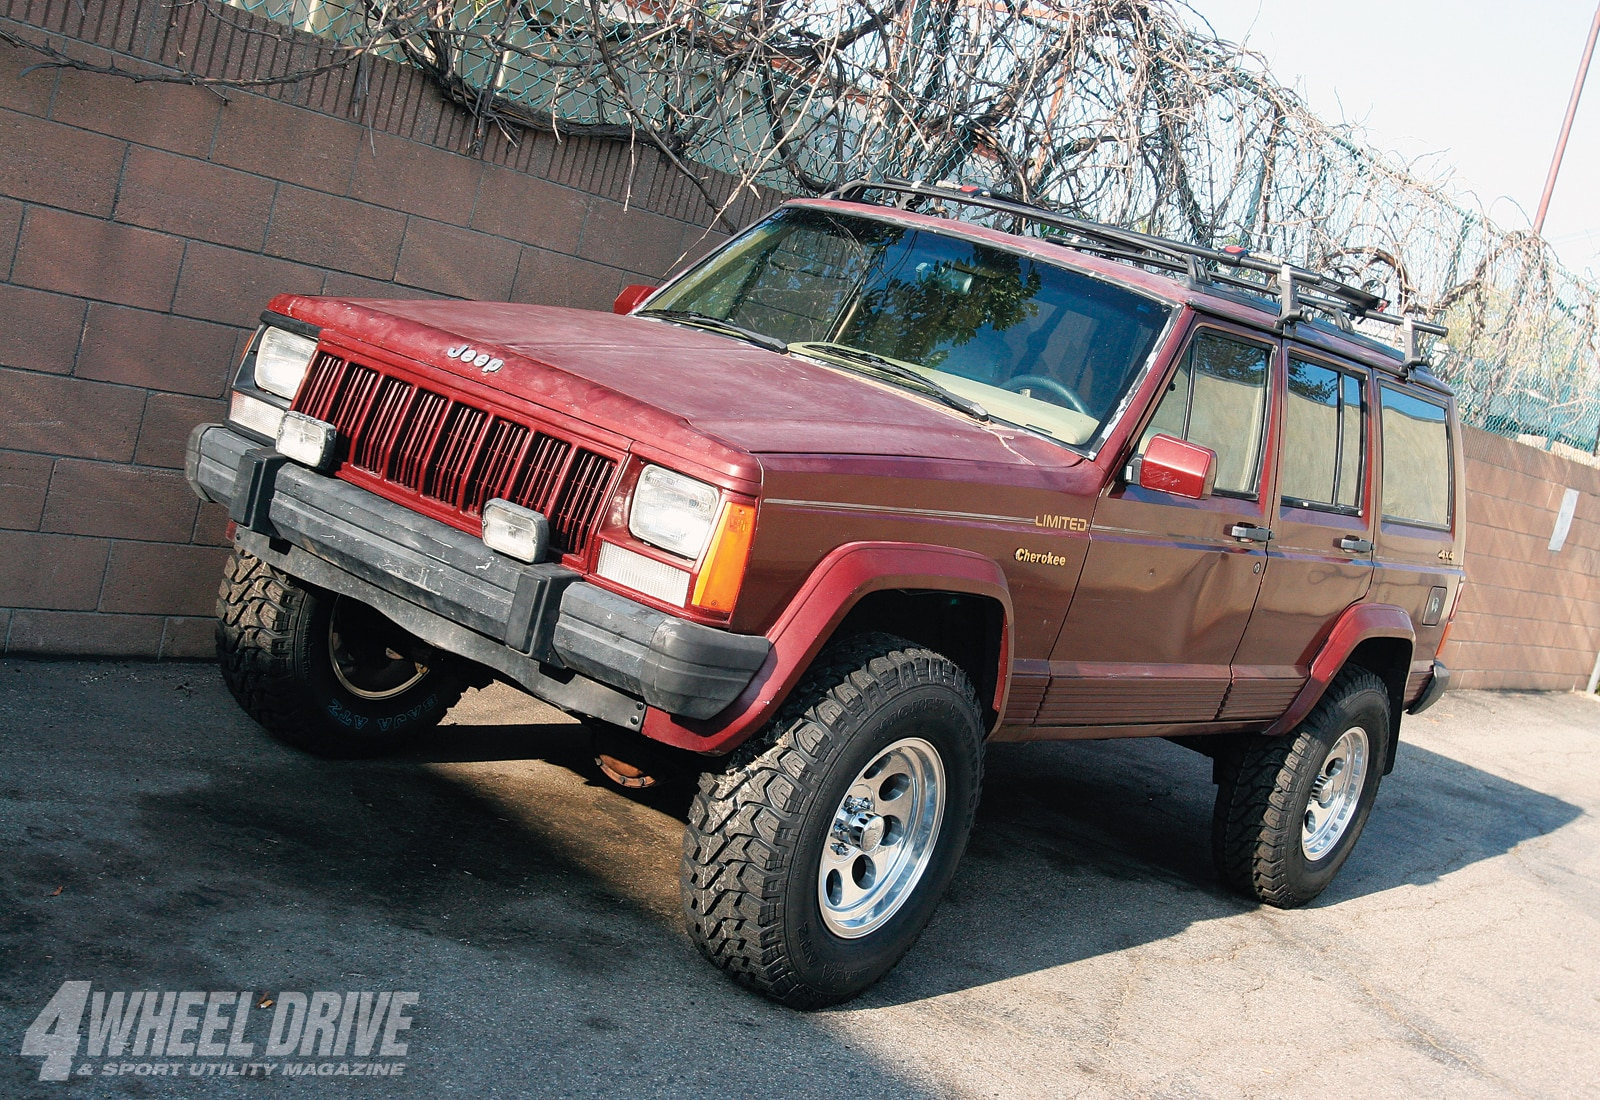 1003 4wd 02+1991 jeep cherokee xj unlimited buildup+after